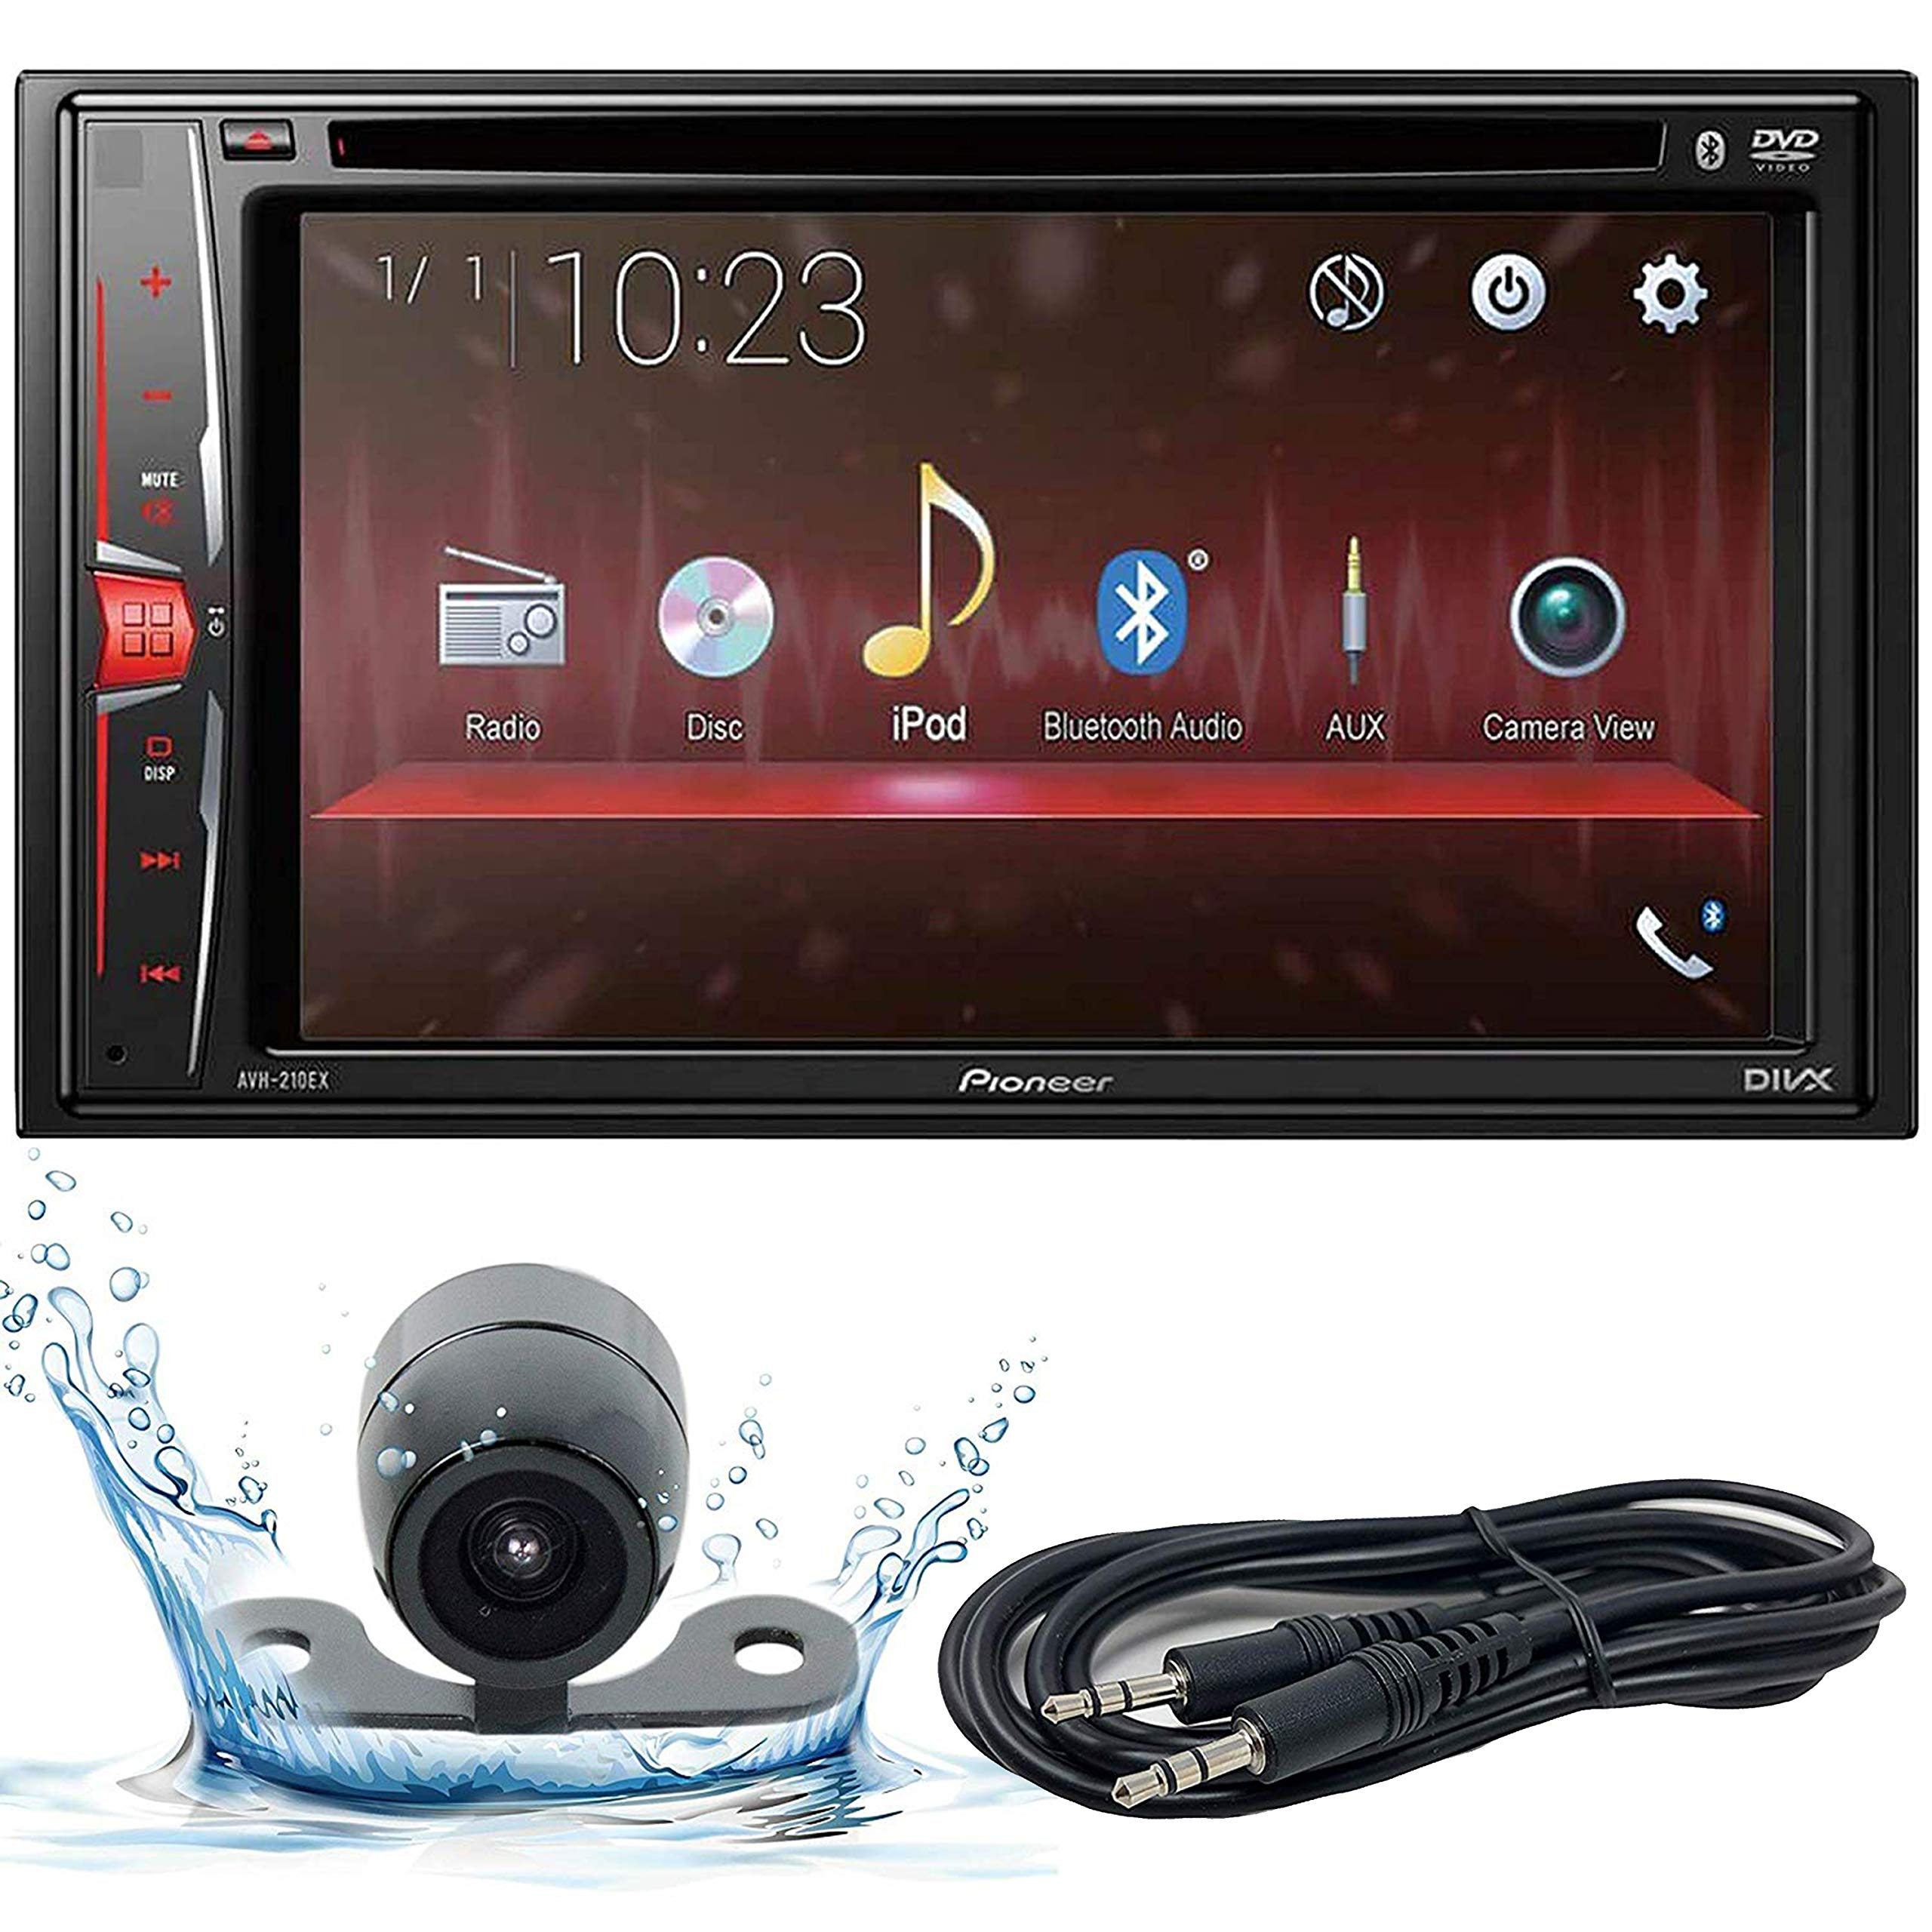 Pioneer AVH-210EX 6.2'' WVGA Display Multimedia DVD Receiver, and Built-in Bluetooth with Backup Camera and EMB 3.5mm Aux Cable Included by PIONEER